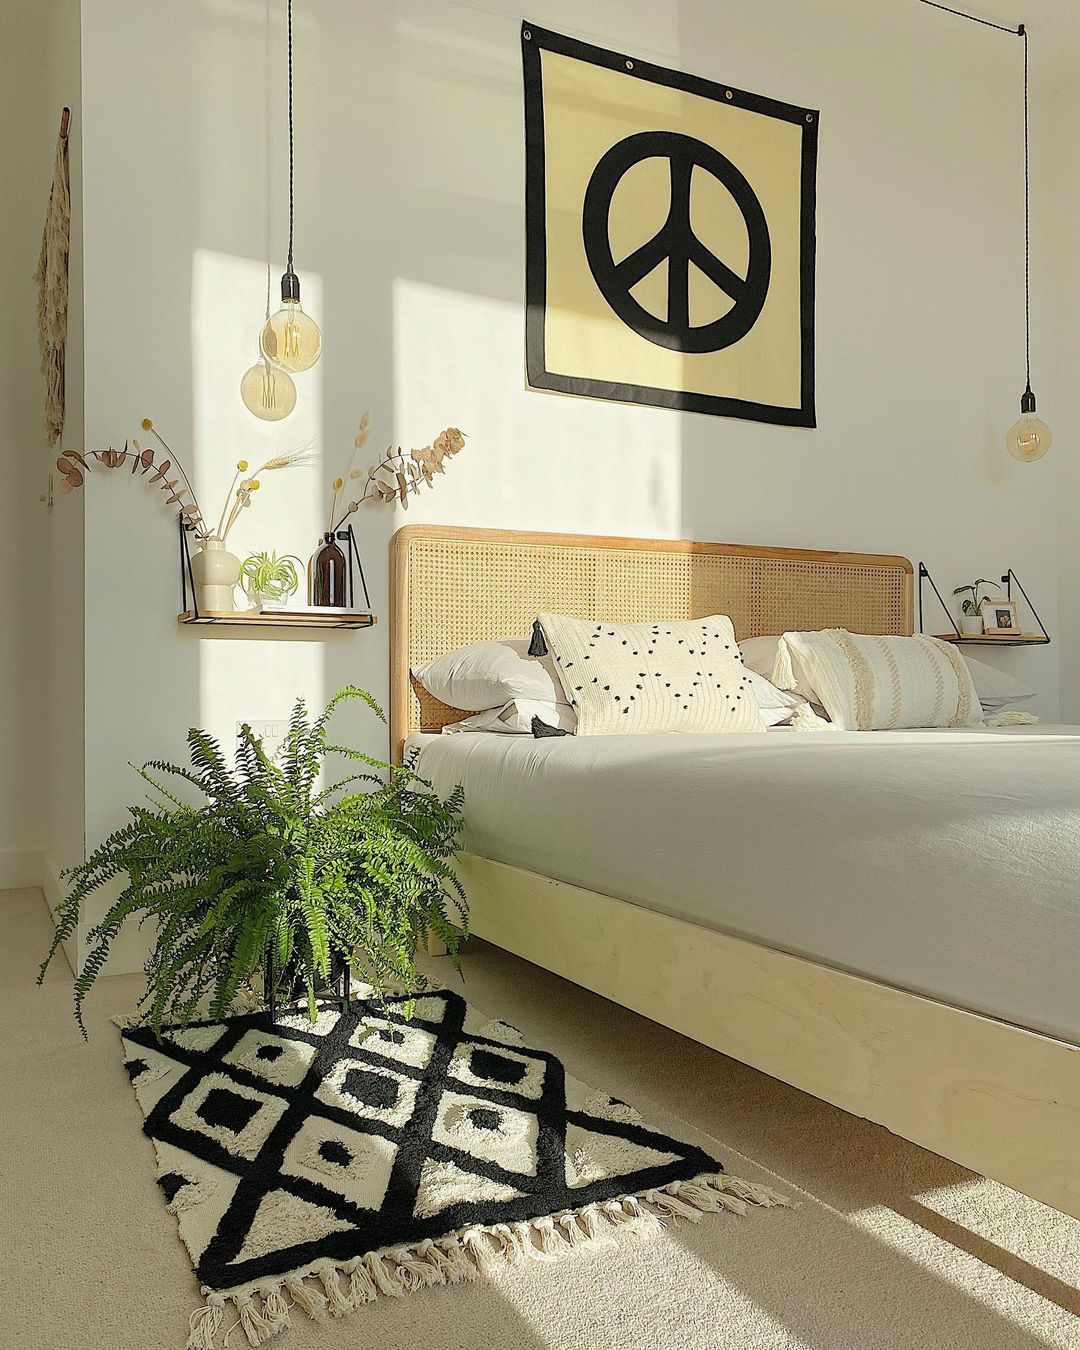 Boho, funky bedroom with peace sign tapestry.